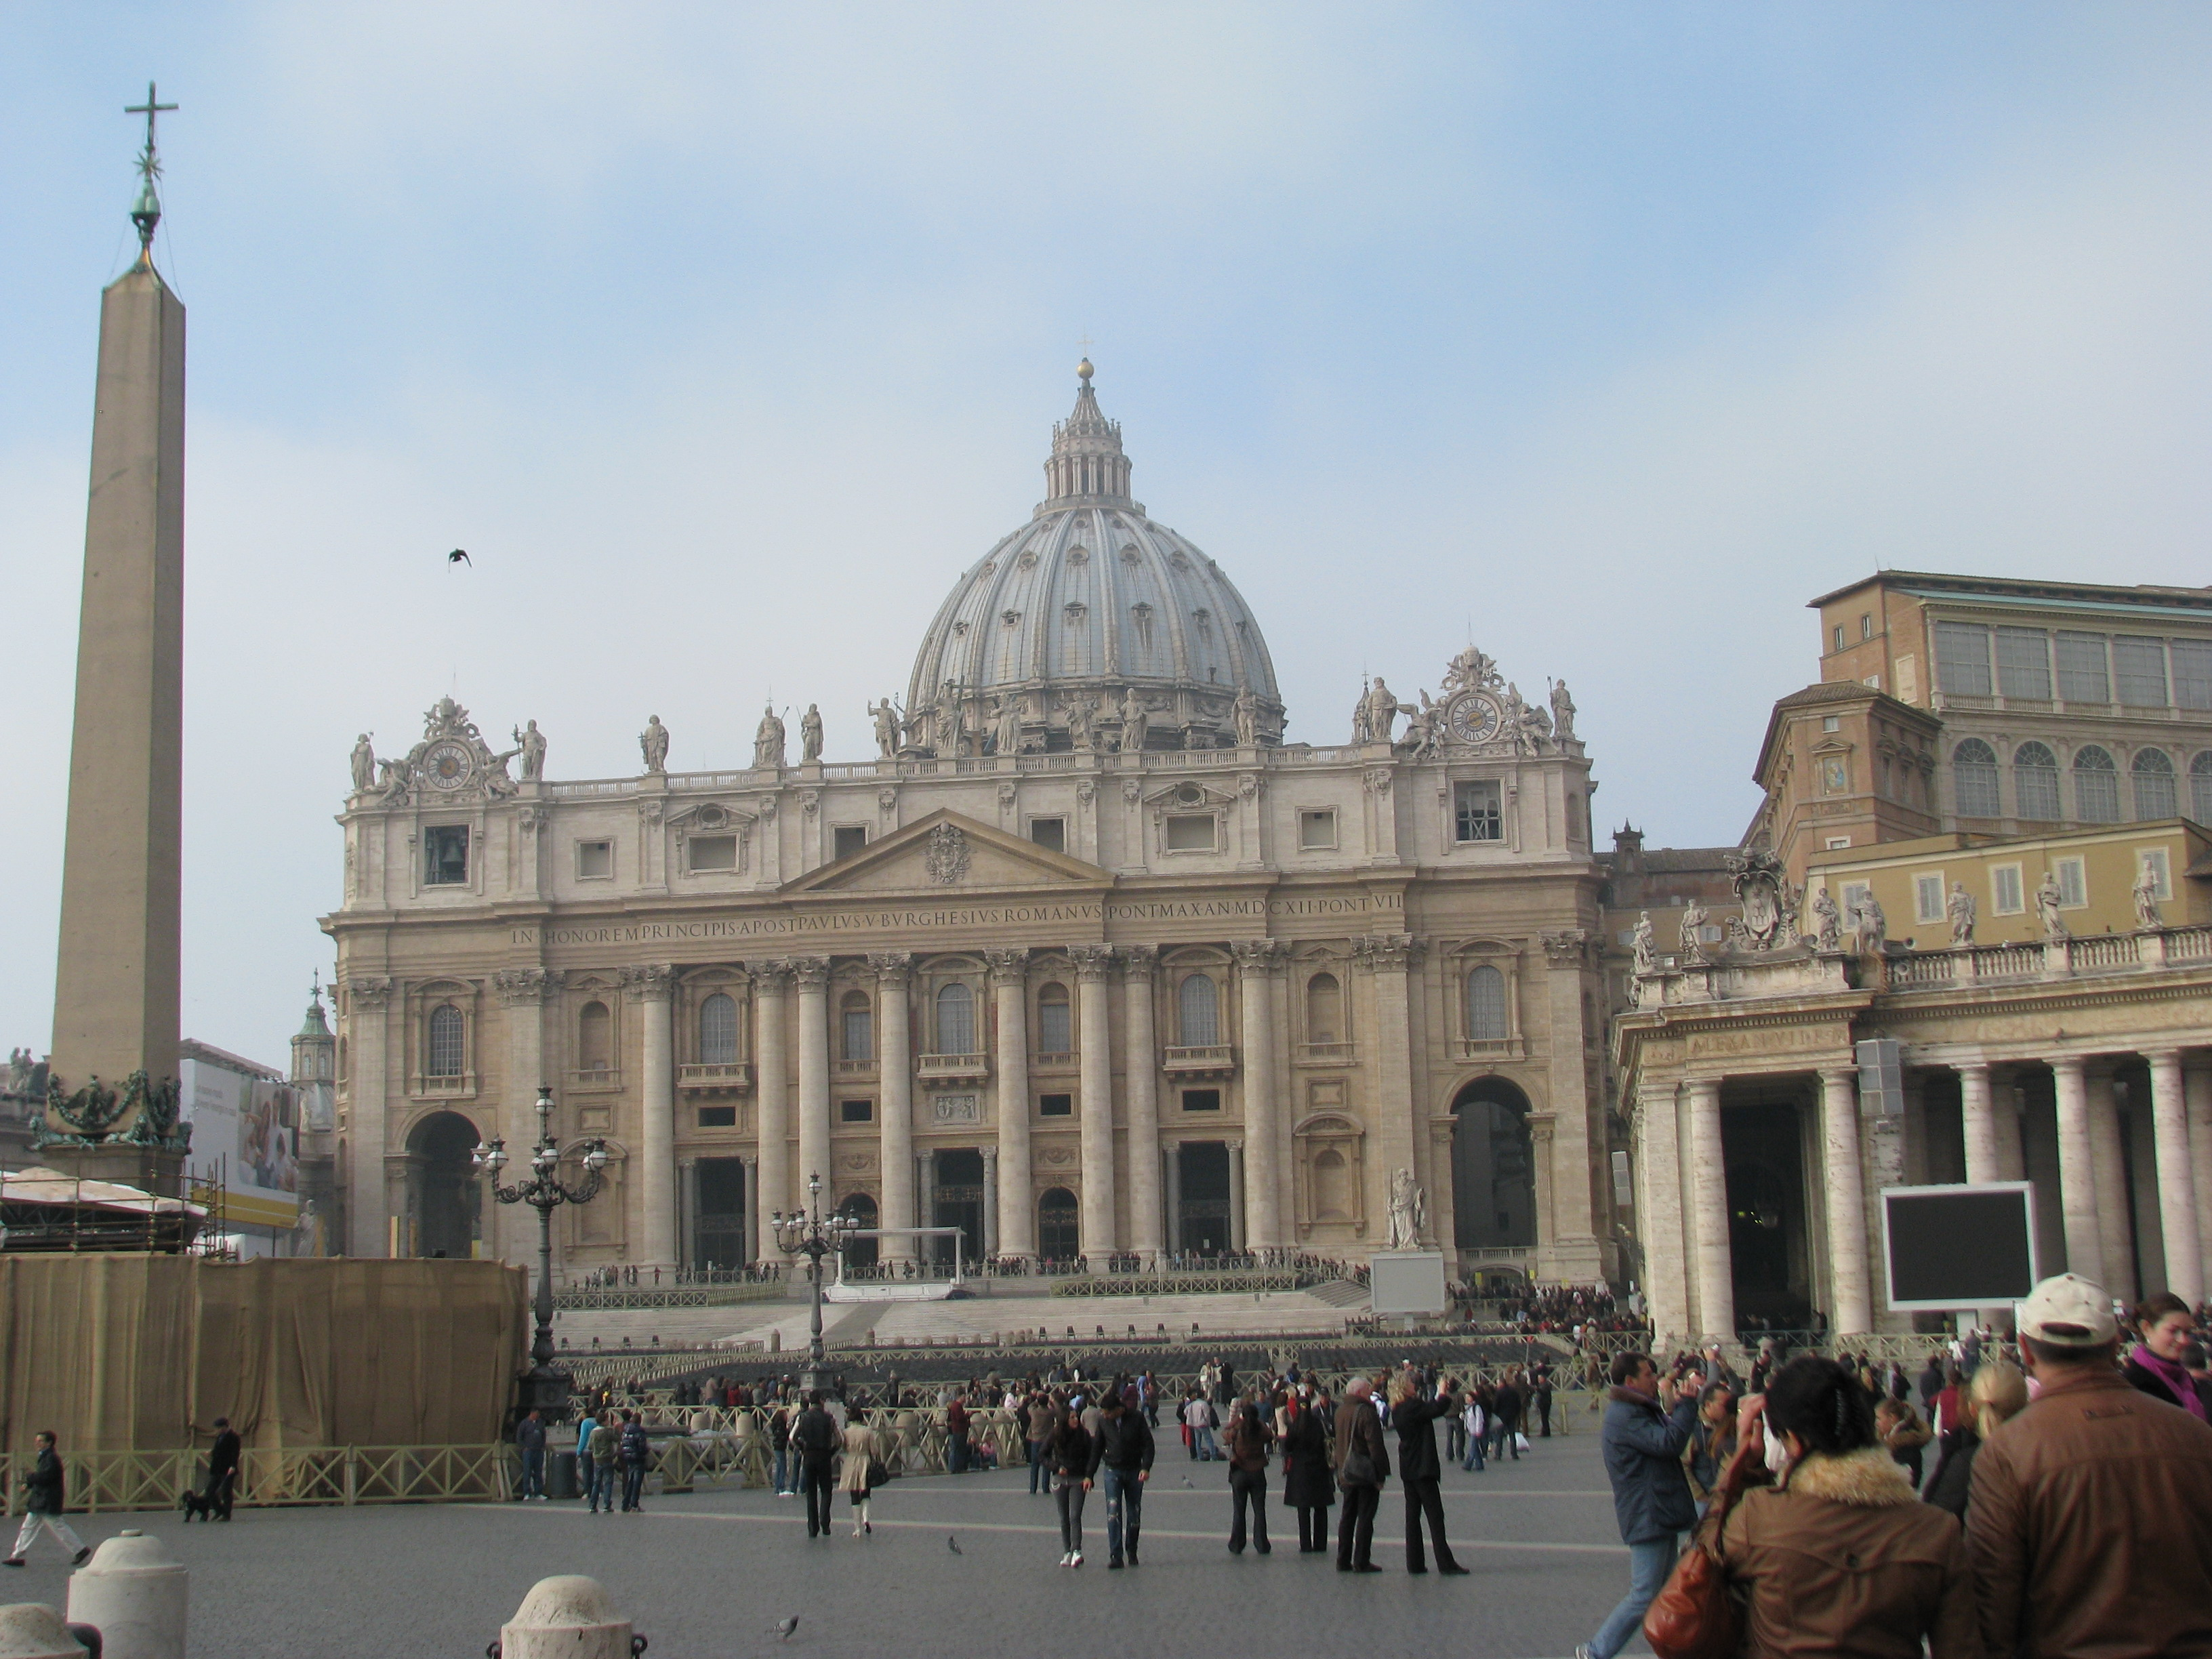 Saint Peter's Basilica and Vatican